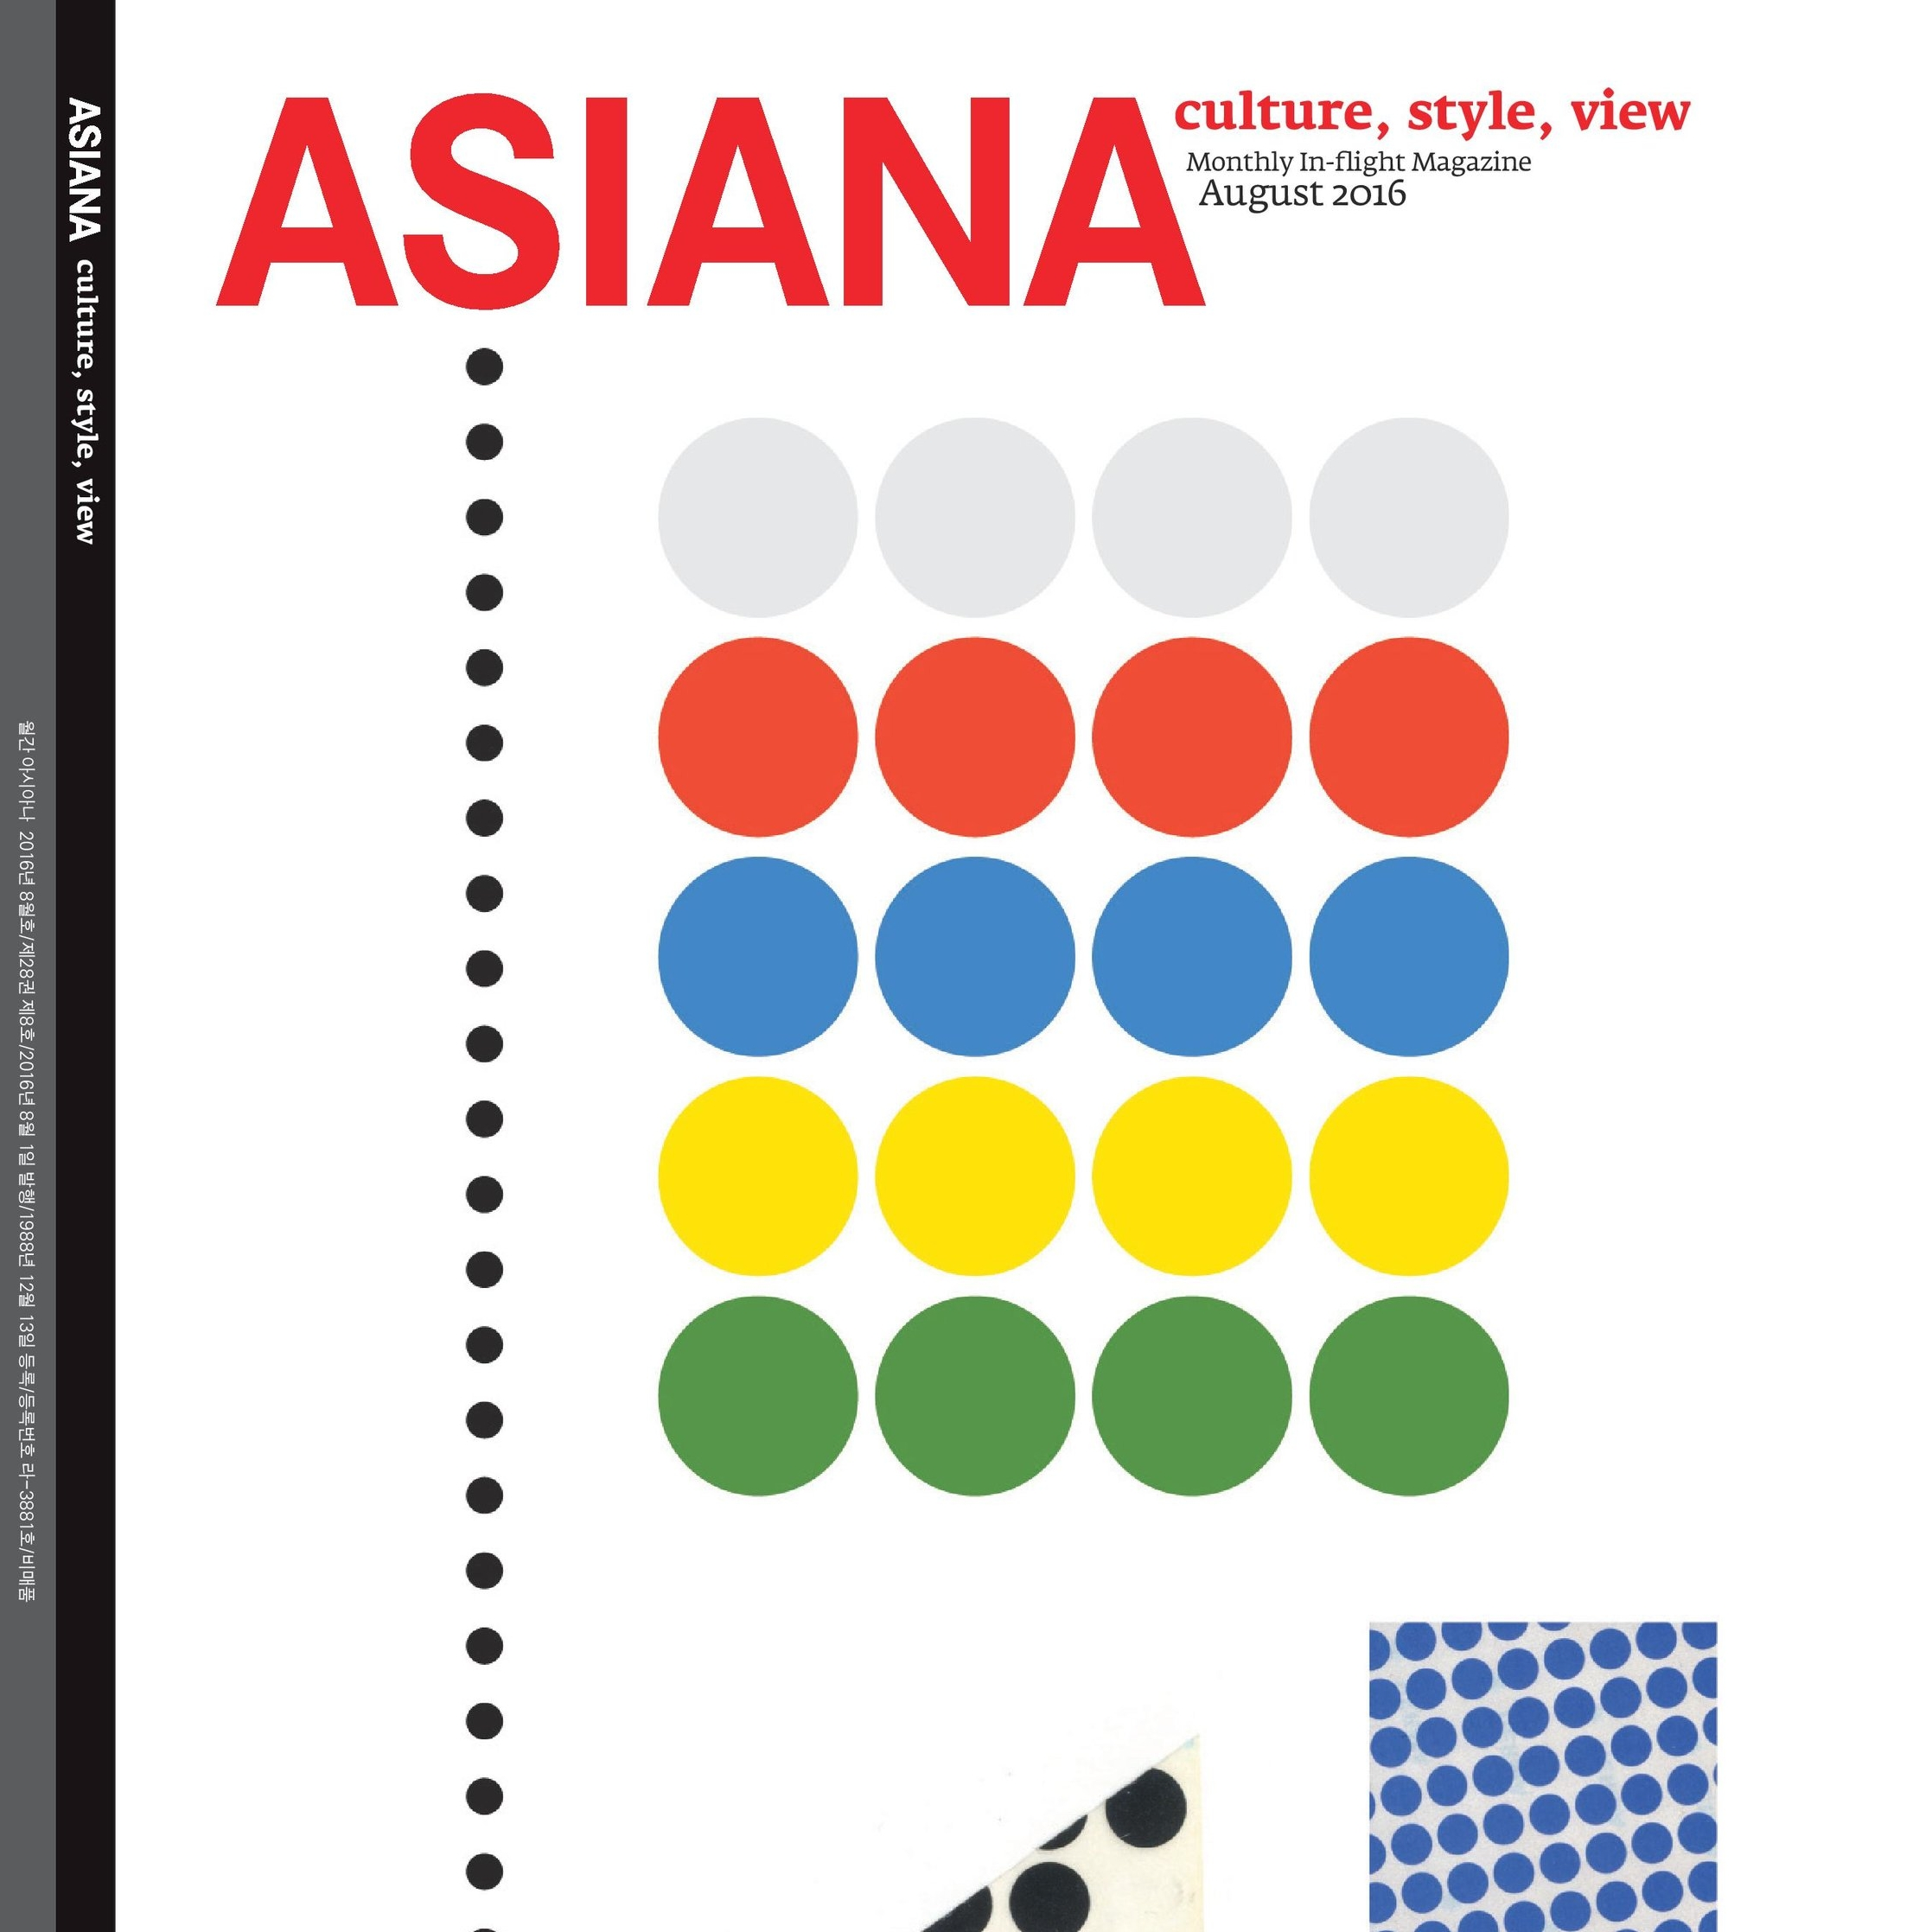 ASIANA, August 2016